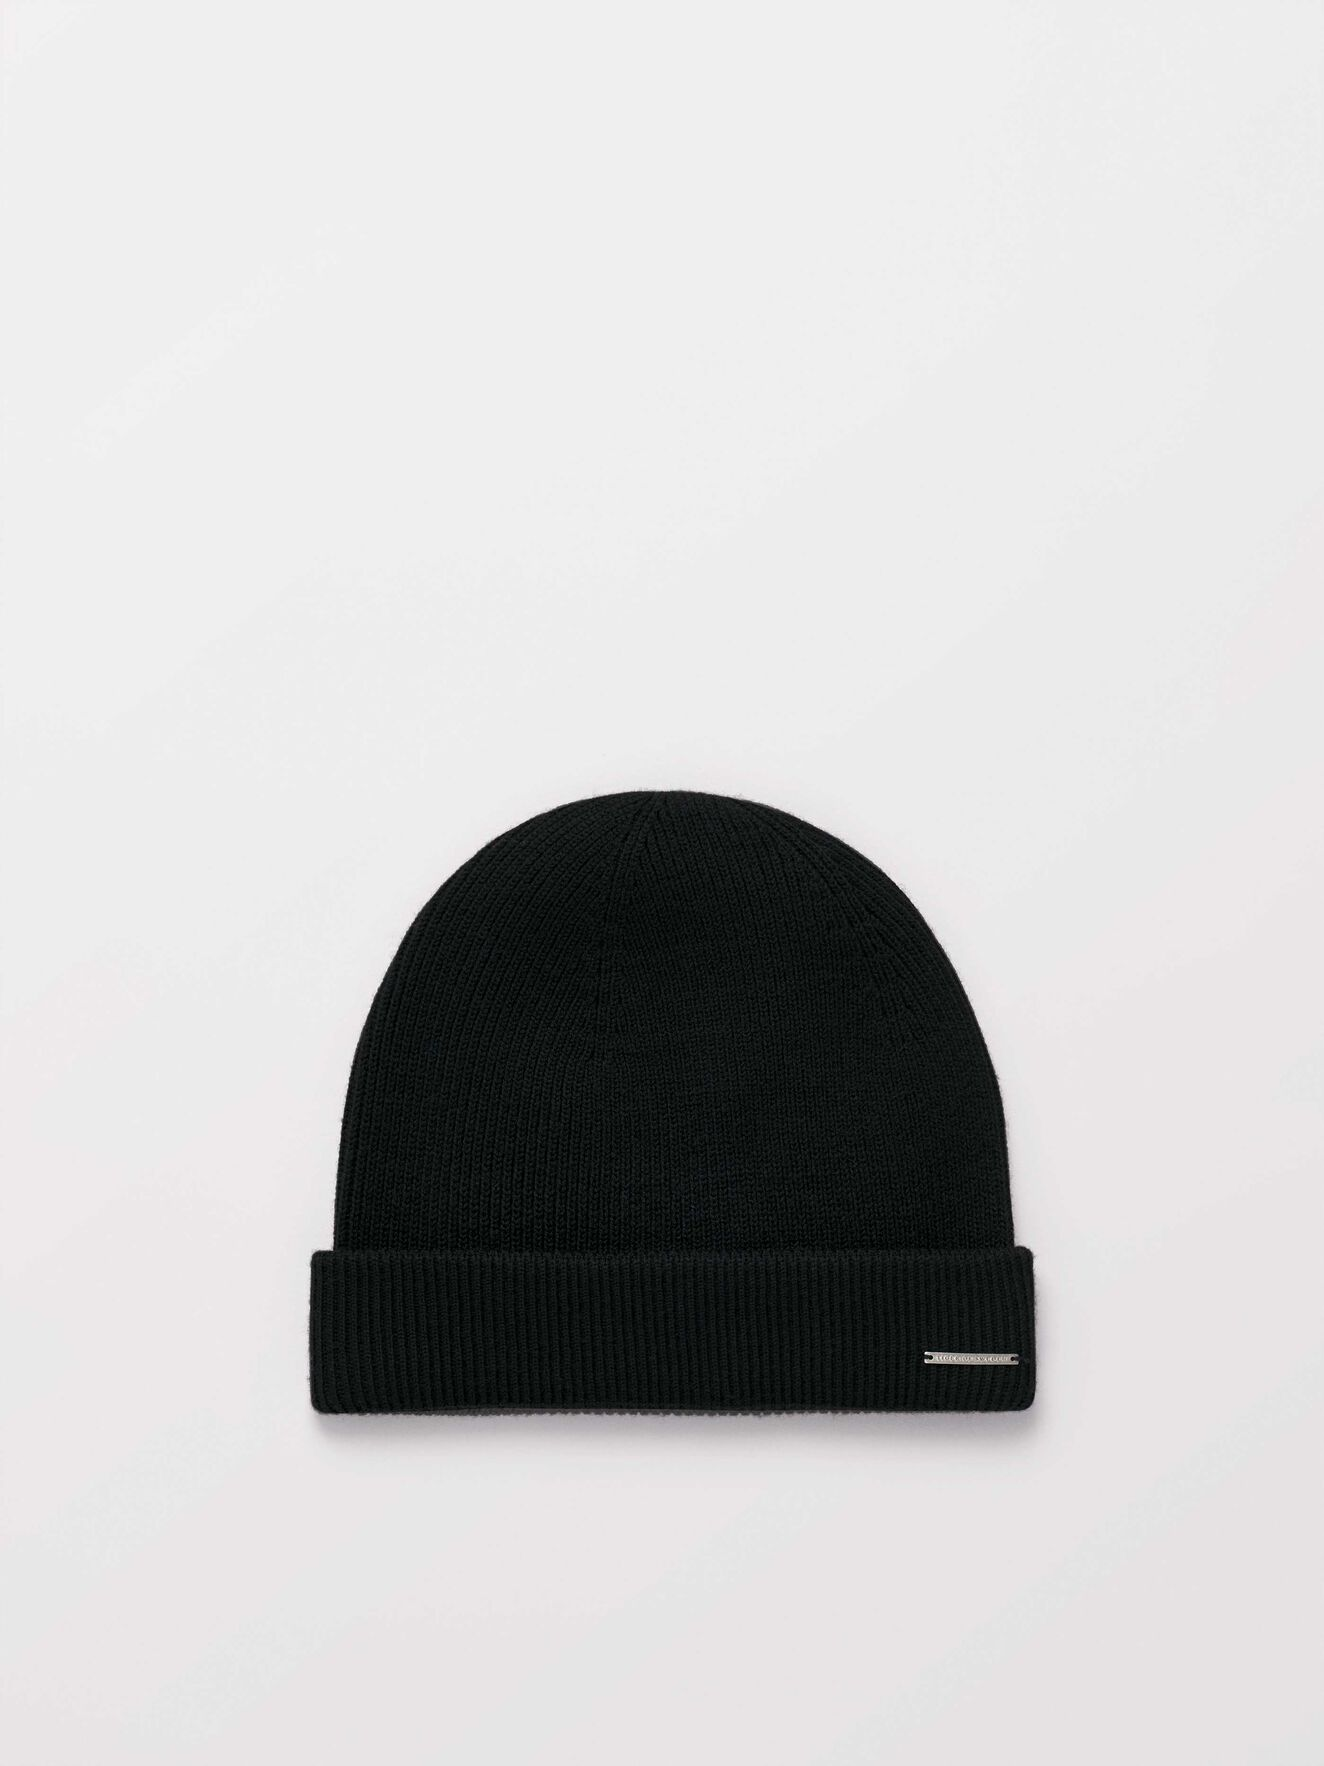 Halfo Beanie in Black from Tiger of Sweden